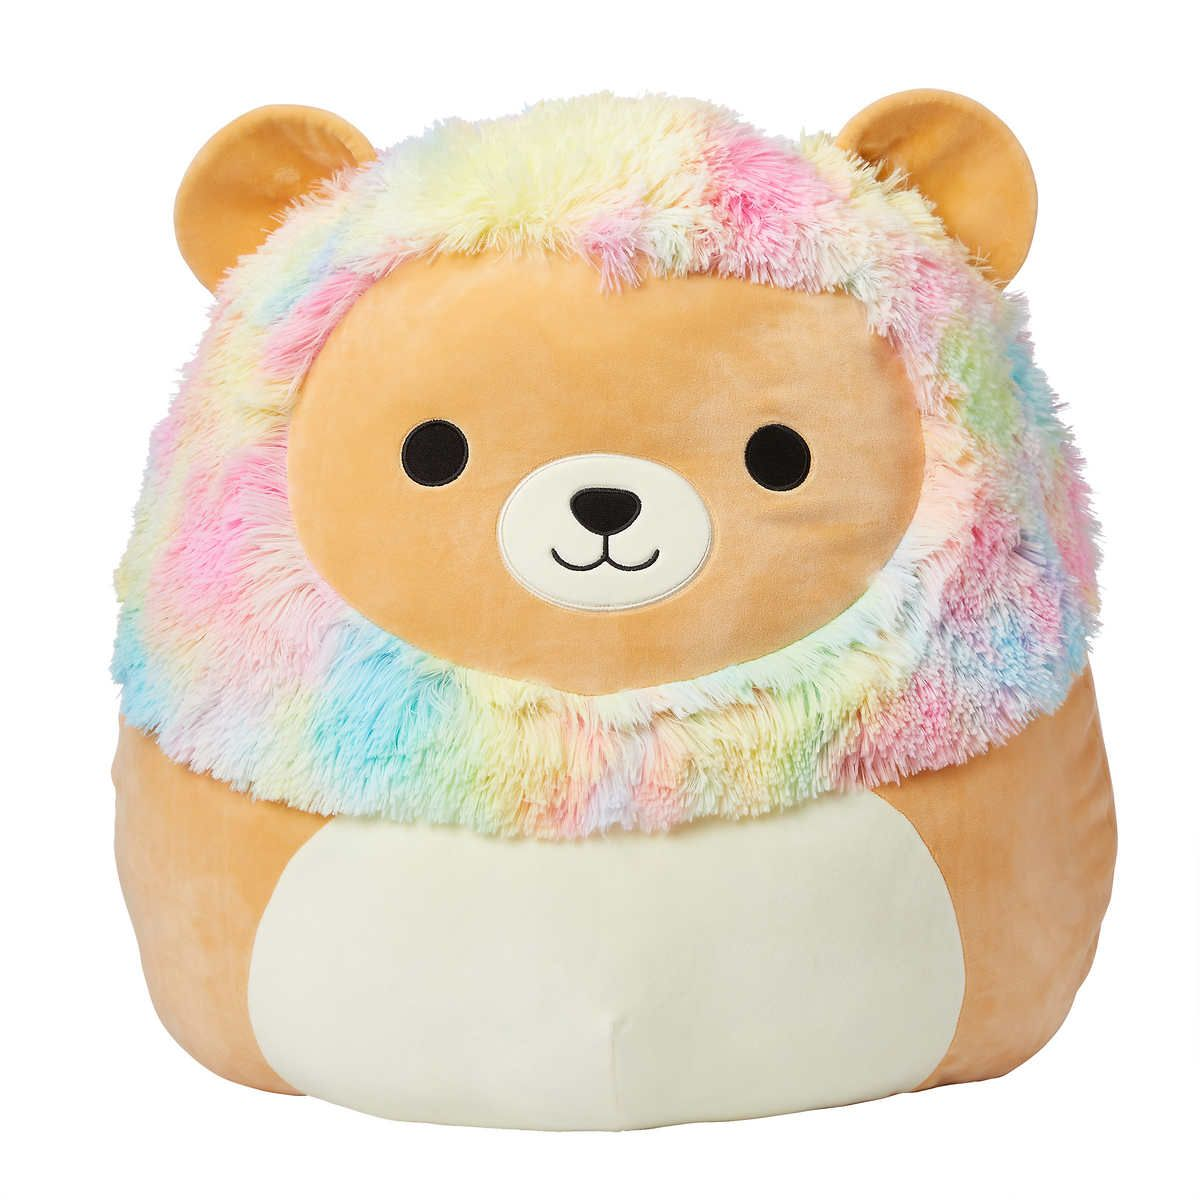 Jumbo Squishmallows 24 Plush Lion Plush Cuddly Huggable